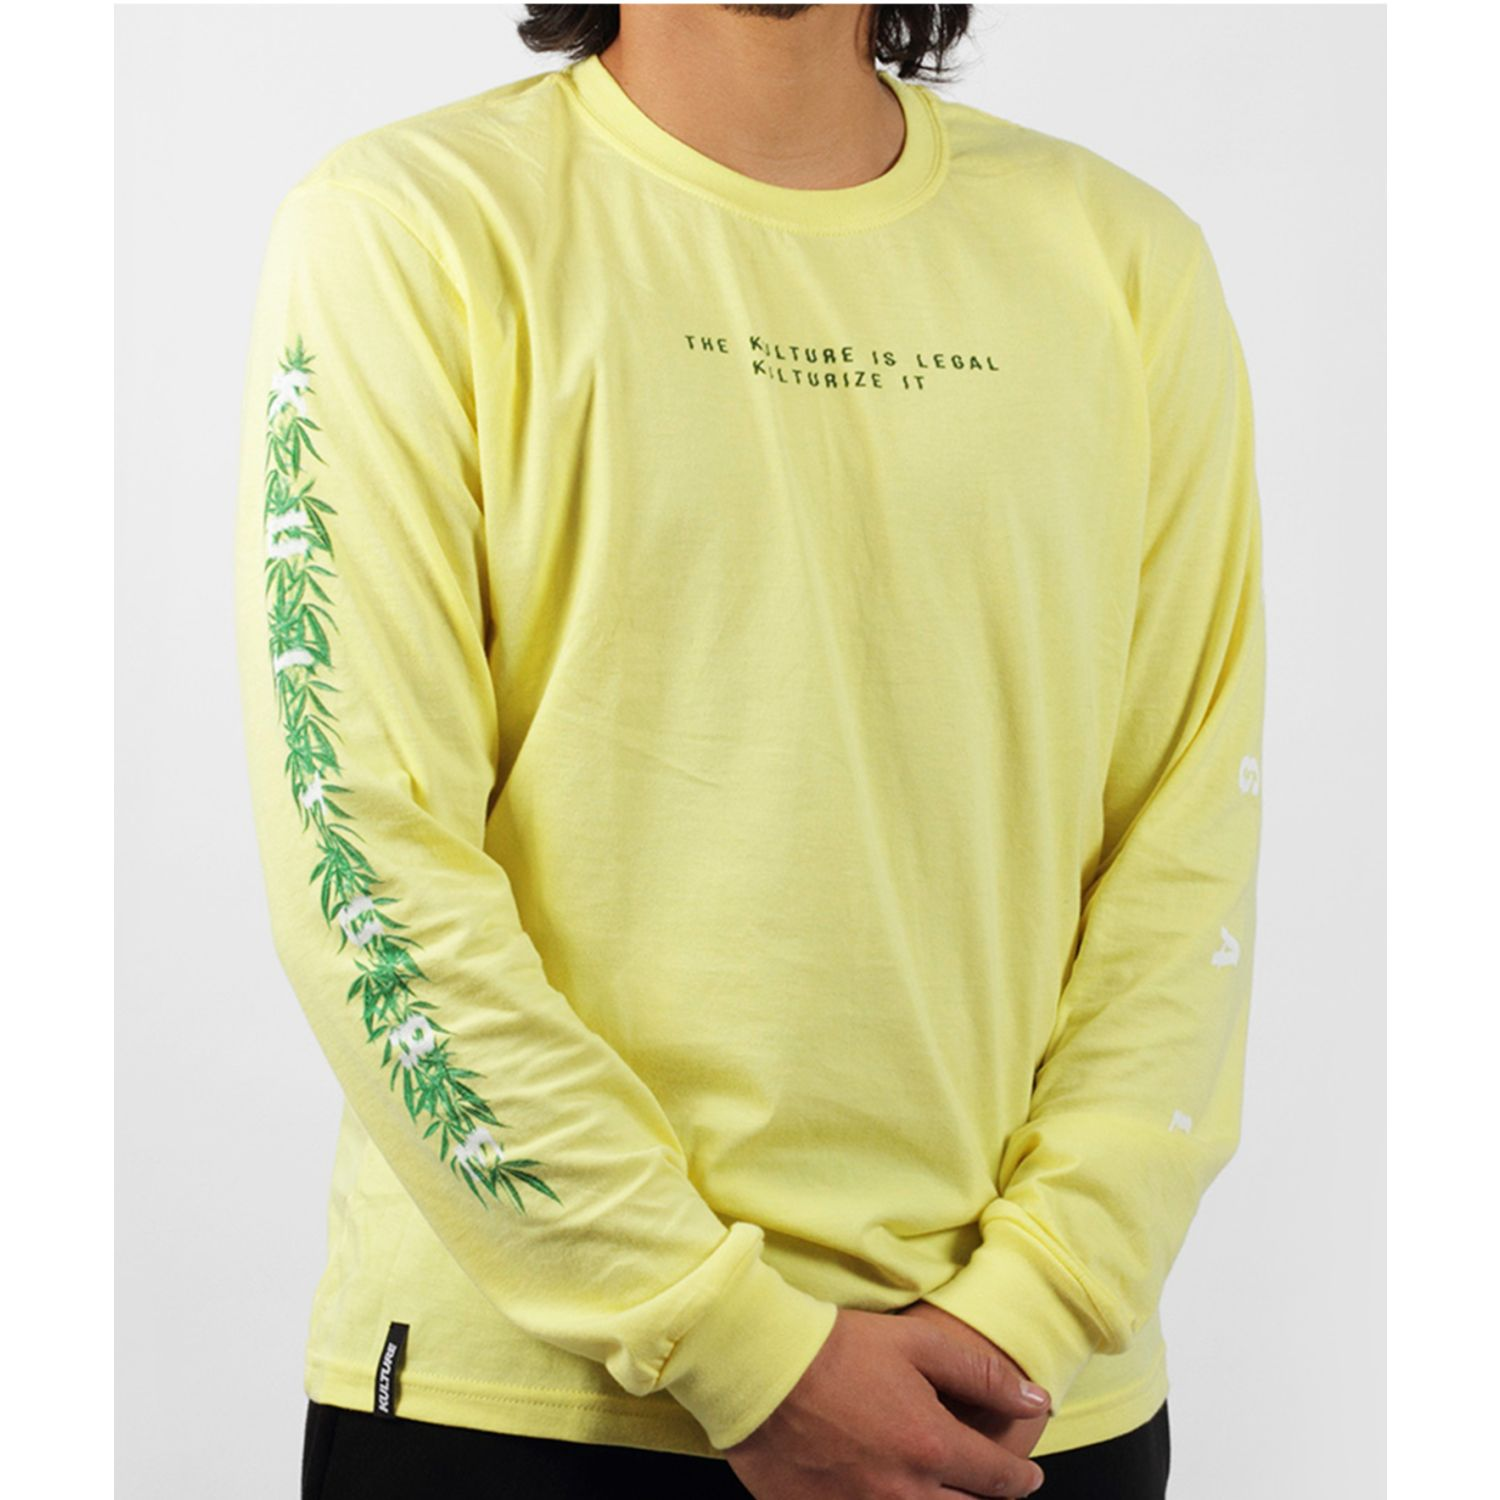 Kulture polo manga larga legal Amarillo / blanco Hoodies y Sweaters Fashion